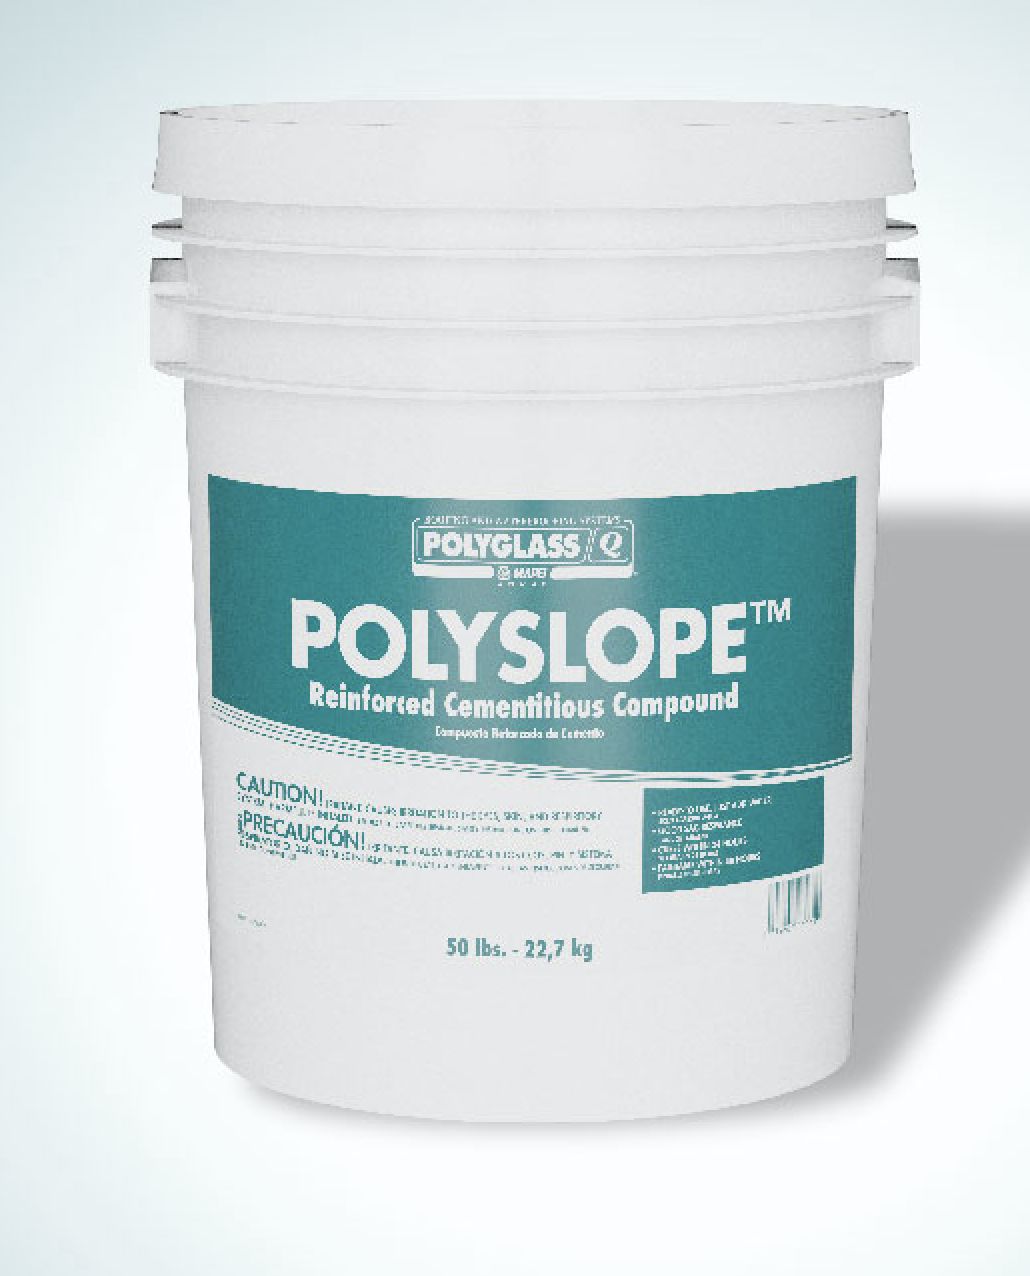 Polyglass U.S.A. Inc. launches POLYSLOPE